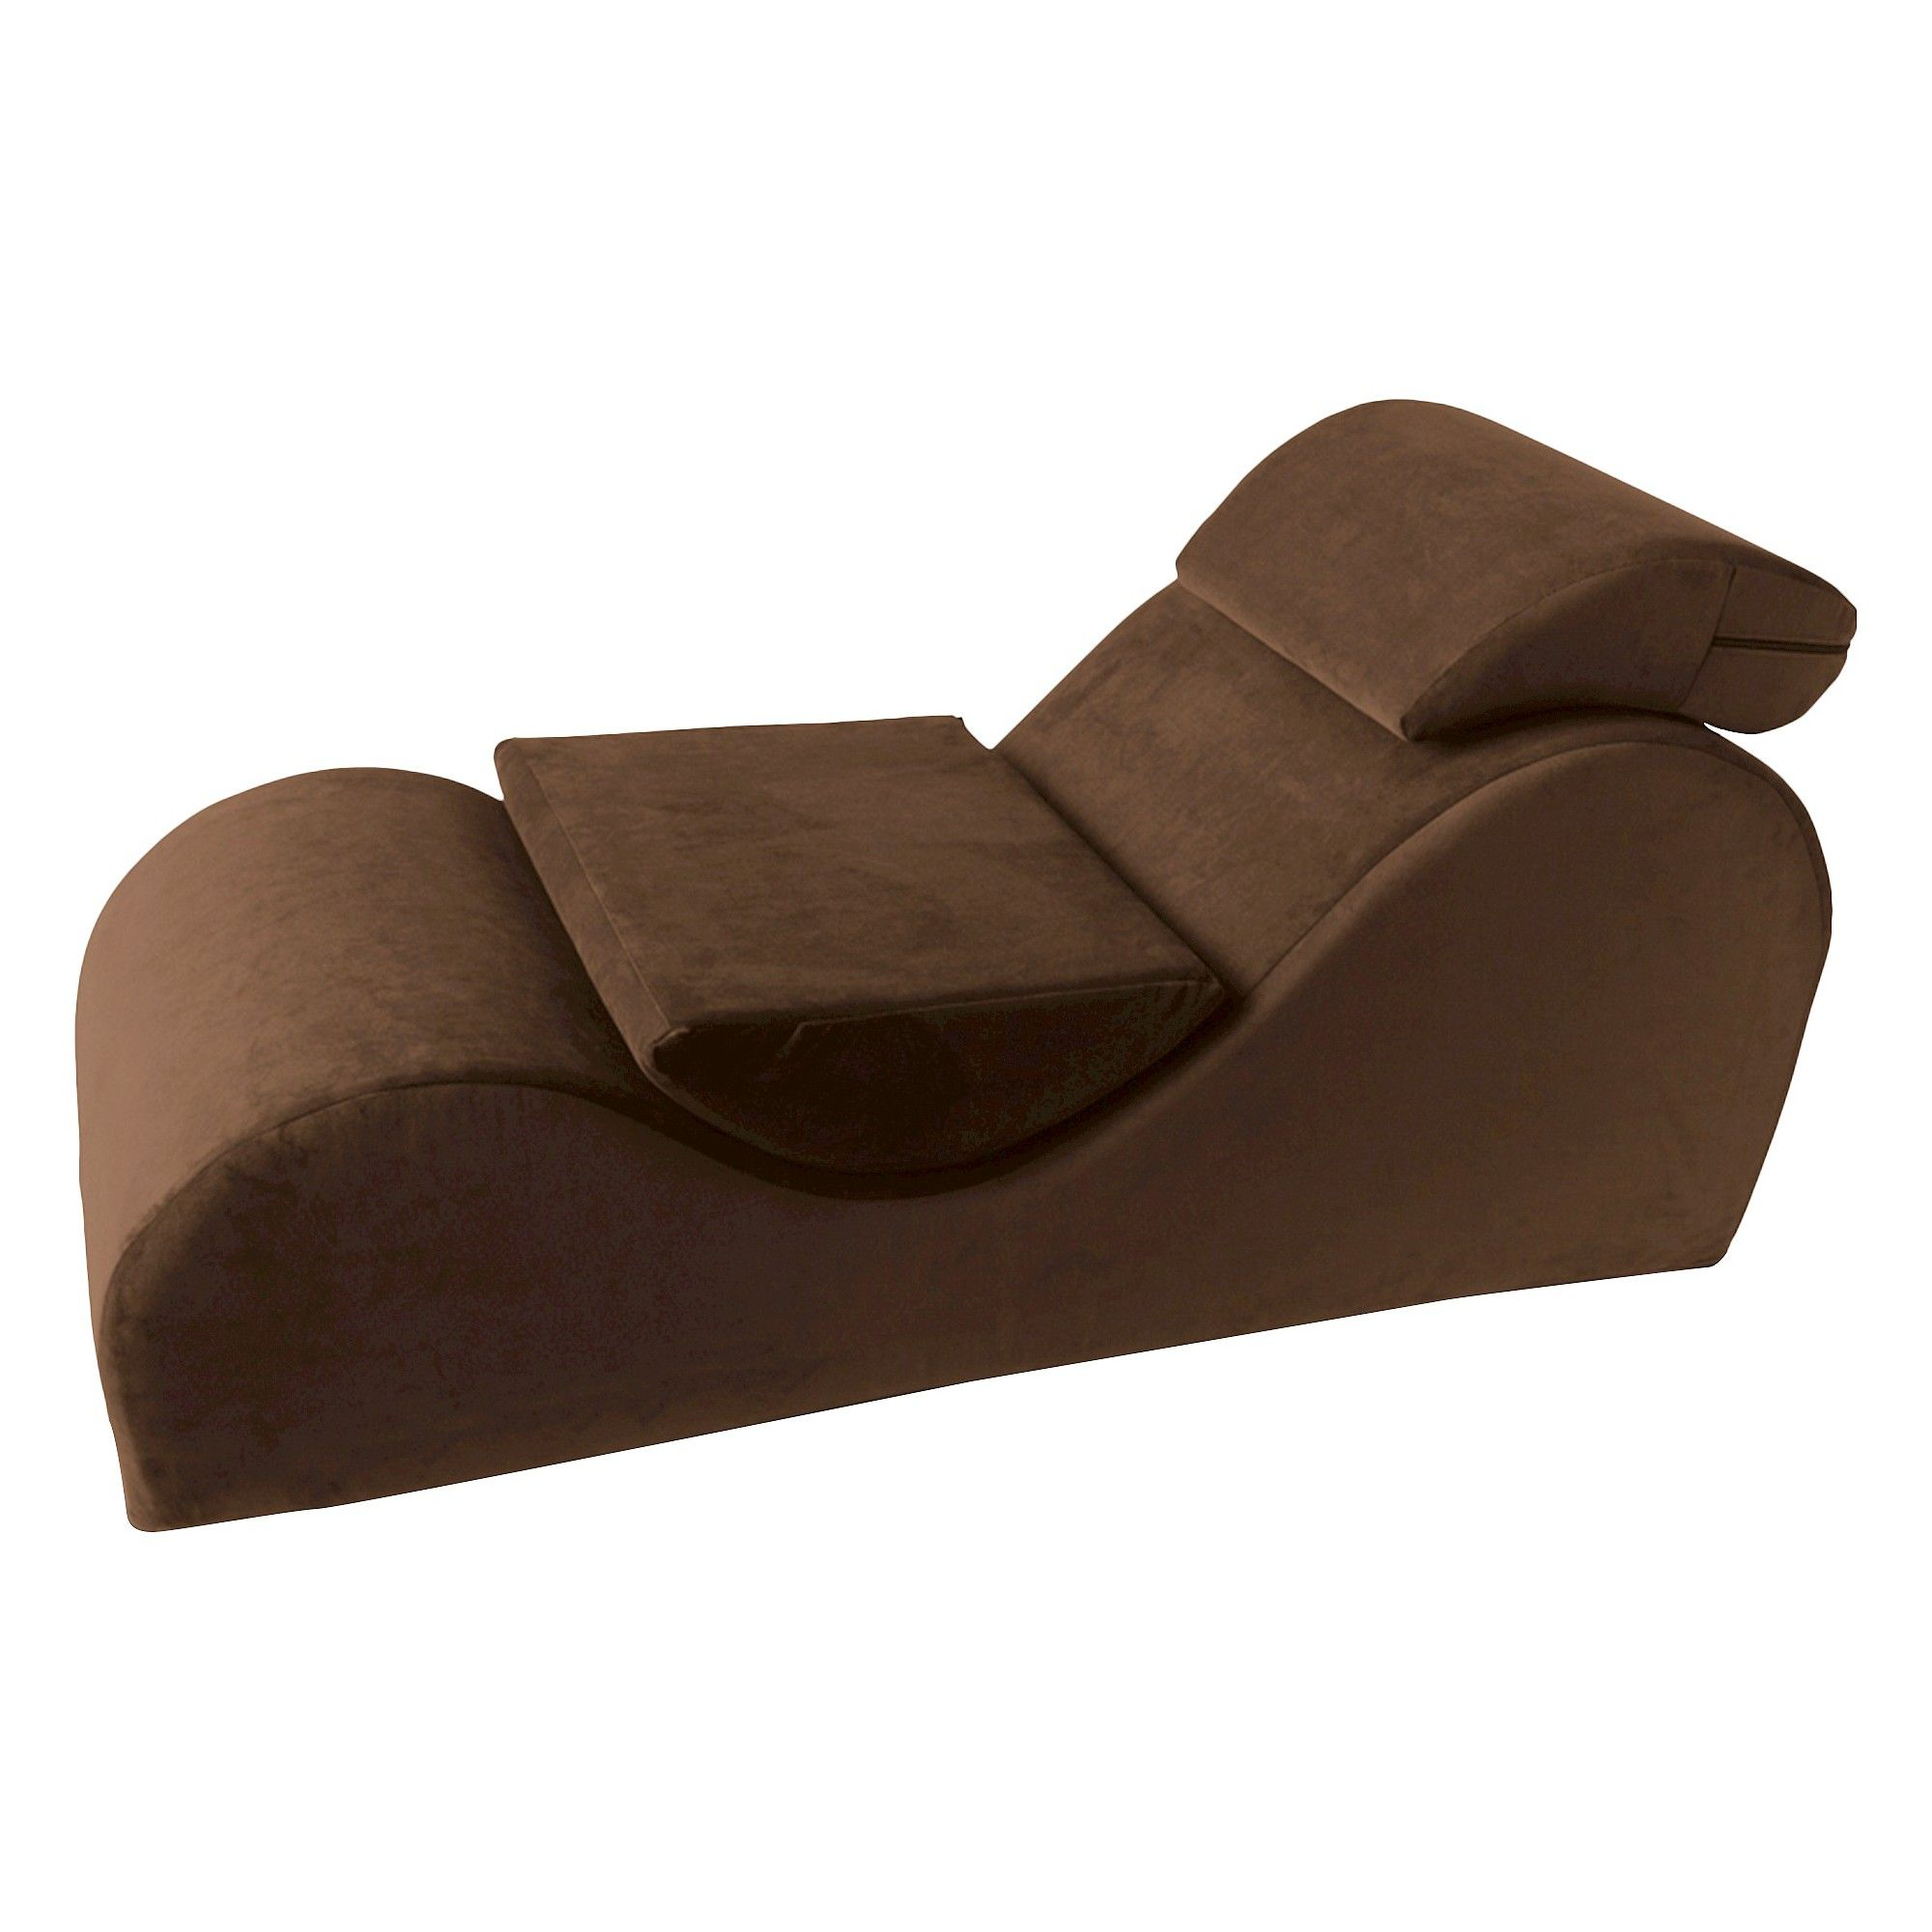 Liberator Esse Velvish Positioning Furniture - Espresso (Brown ...